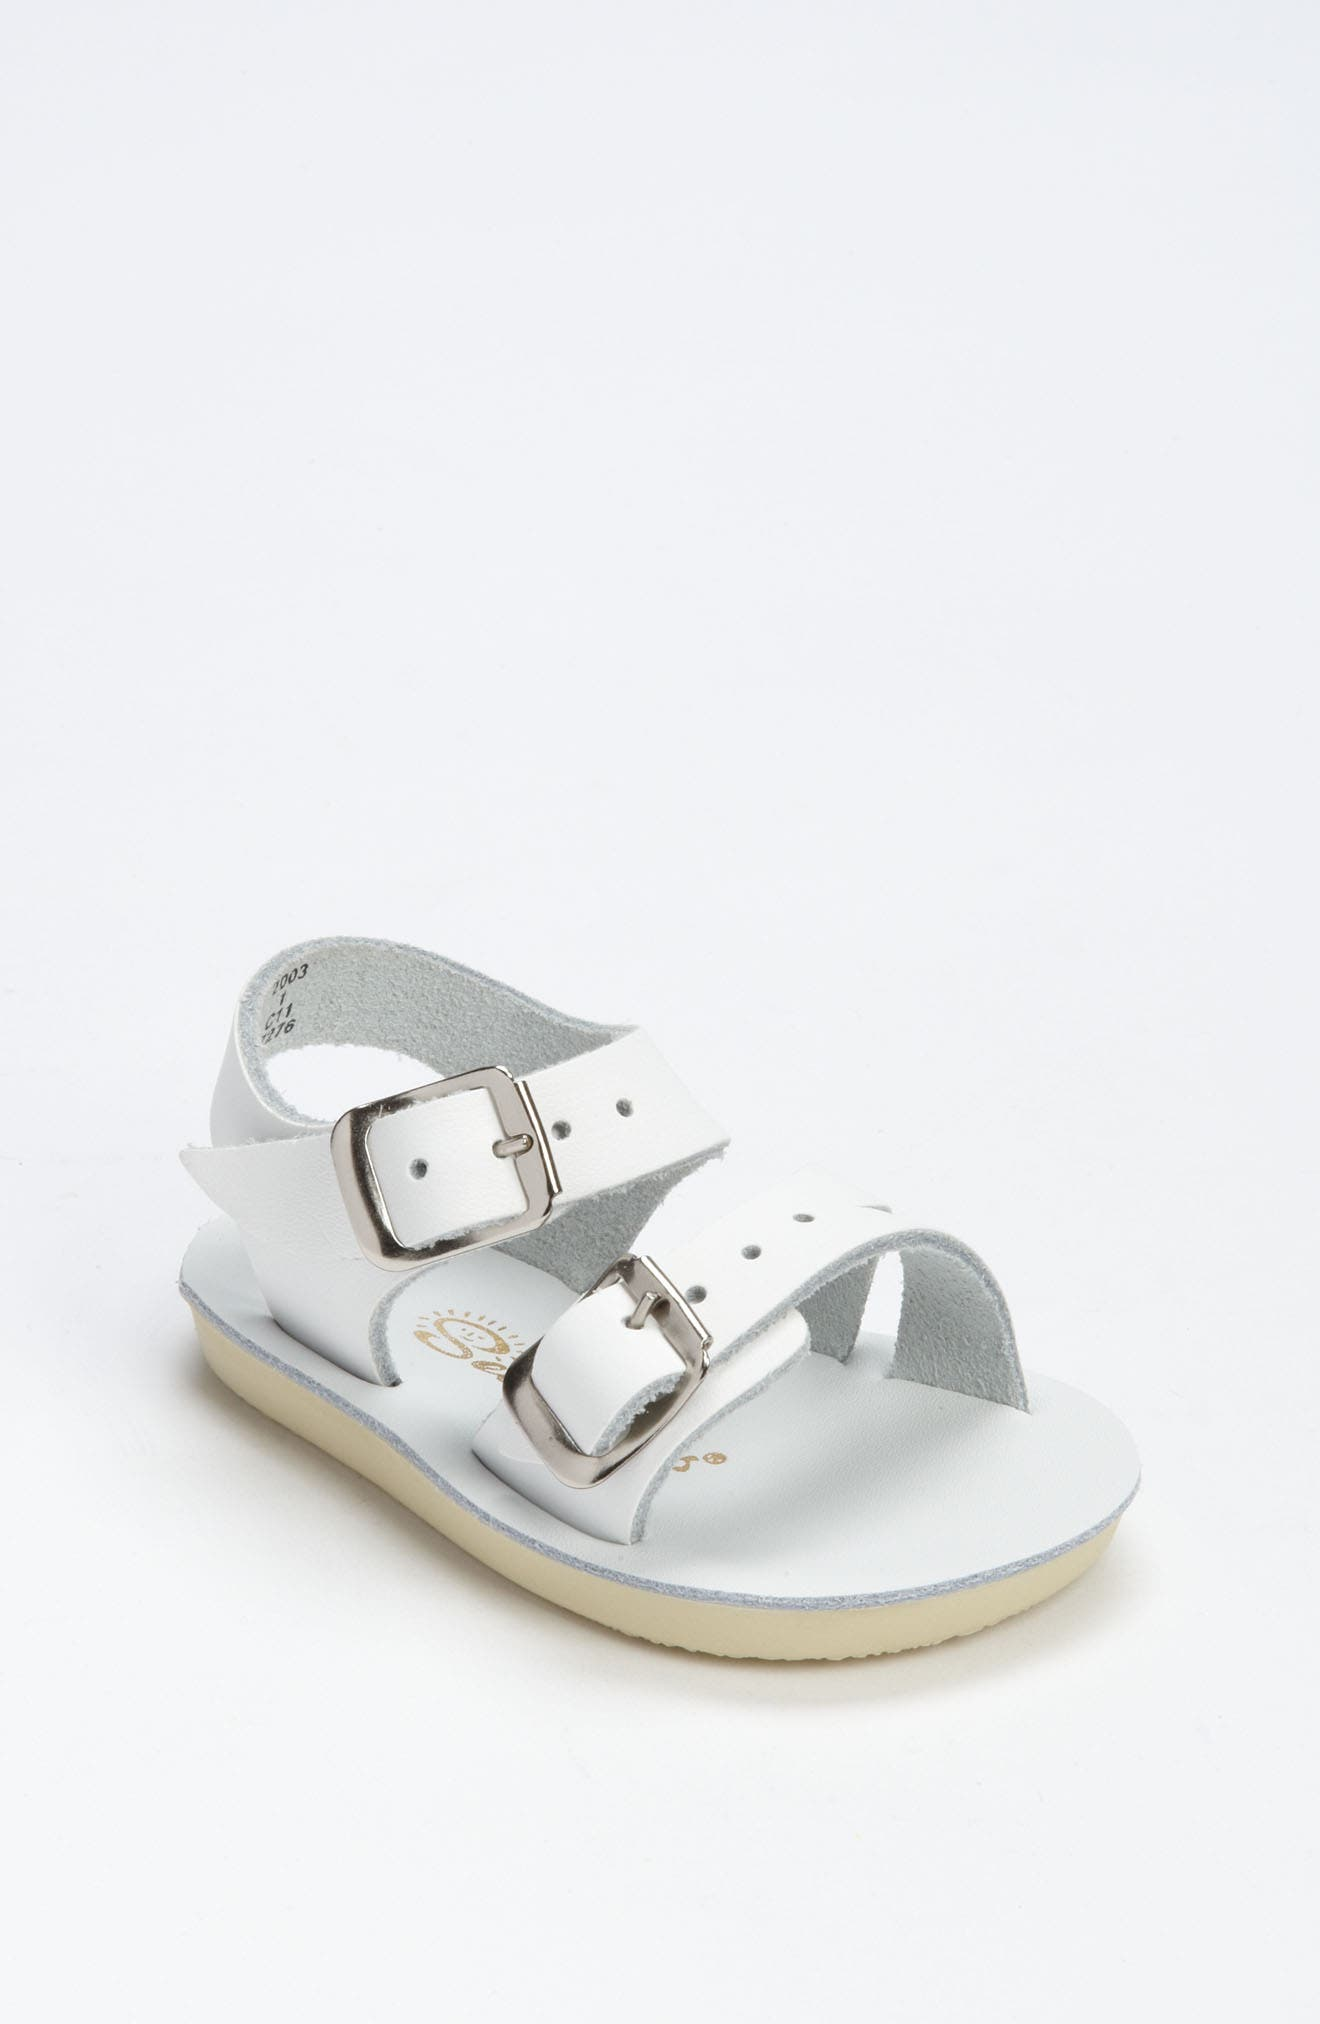 SALT WATER SANDALS BY HOY Sea Wee Water Friendly Sandal, Main, color, WHITE